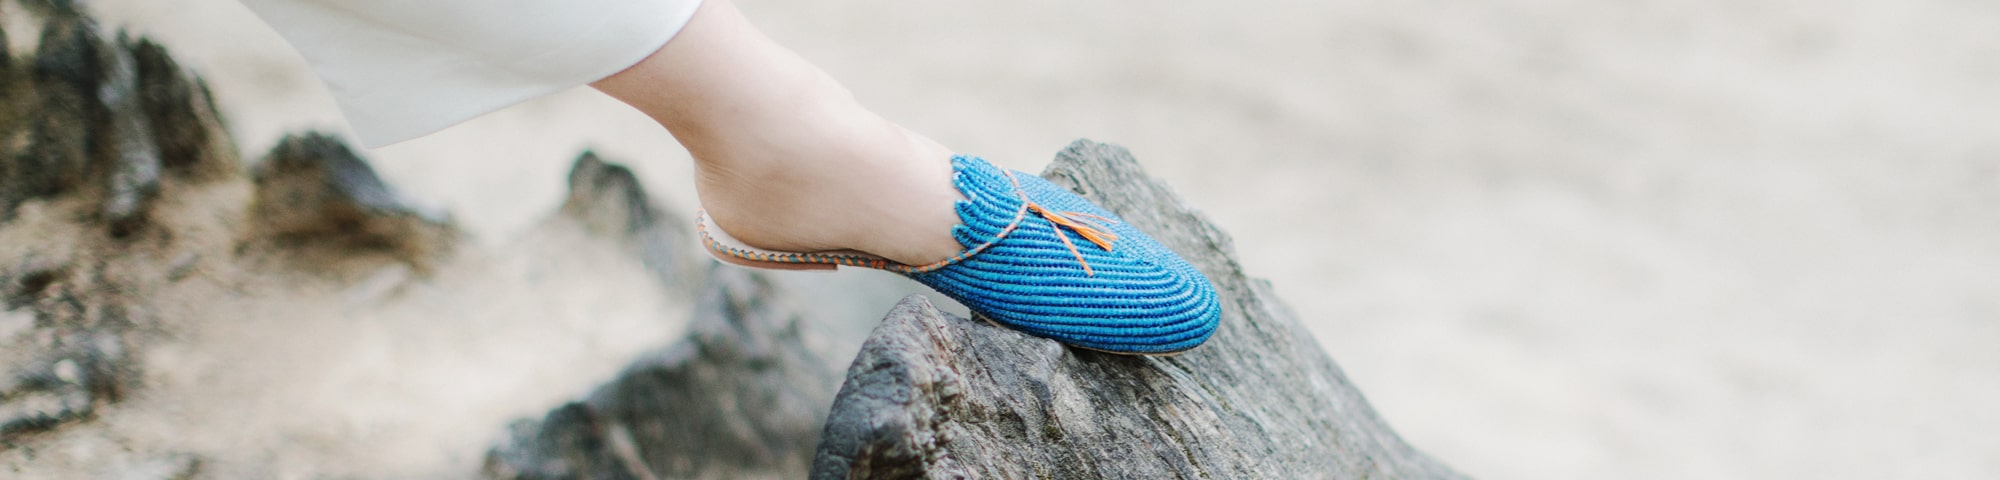 one foot wearing blue pompom raffia slippers by ABURY